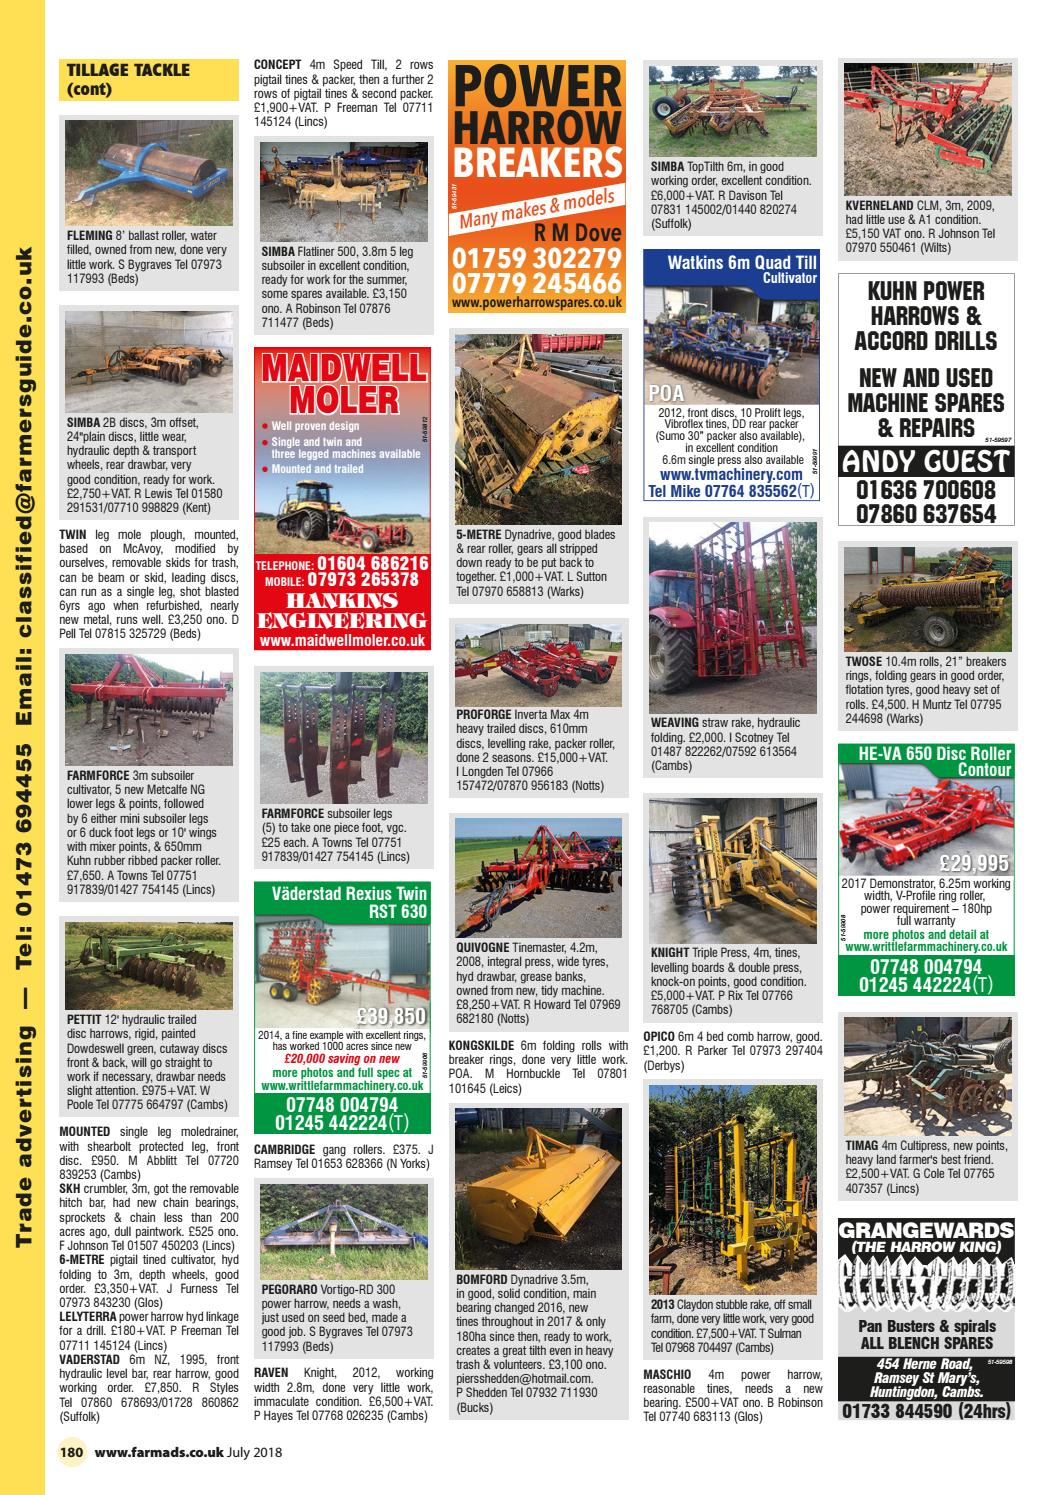 ecf134c93d Farmers Guide July 2018 by Farmers Guide - issuu